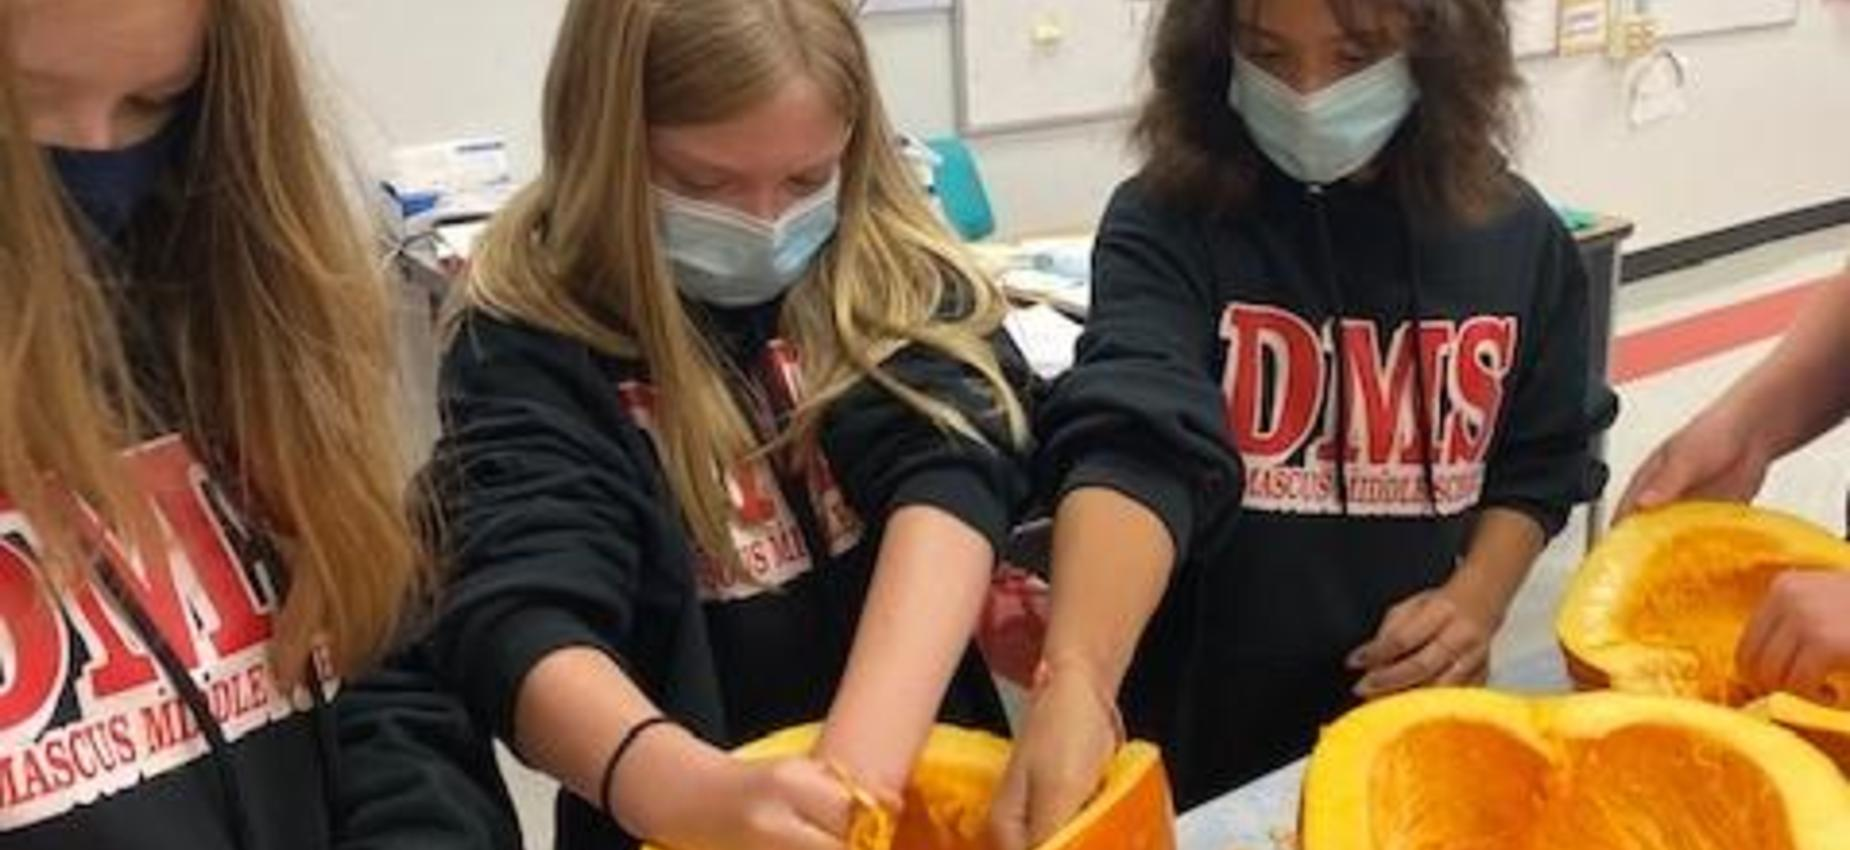 Students clean out a pumpkin in a classroom.